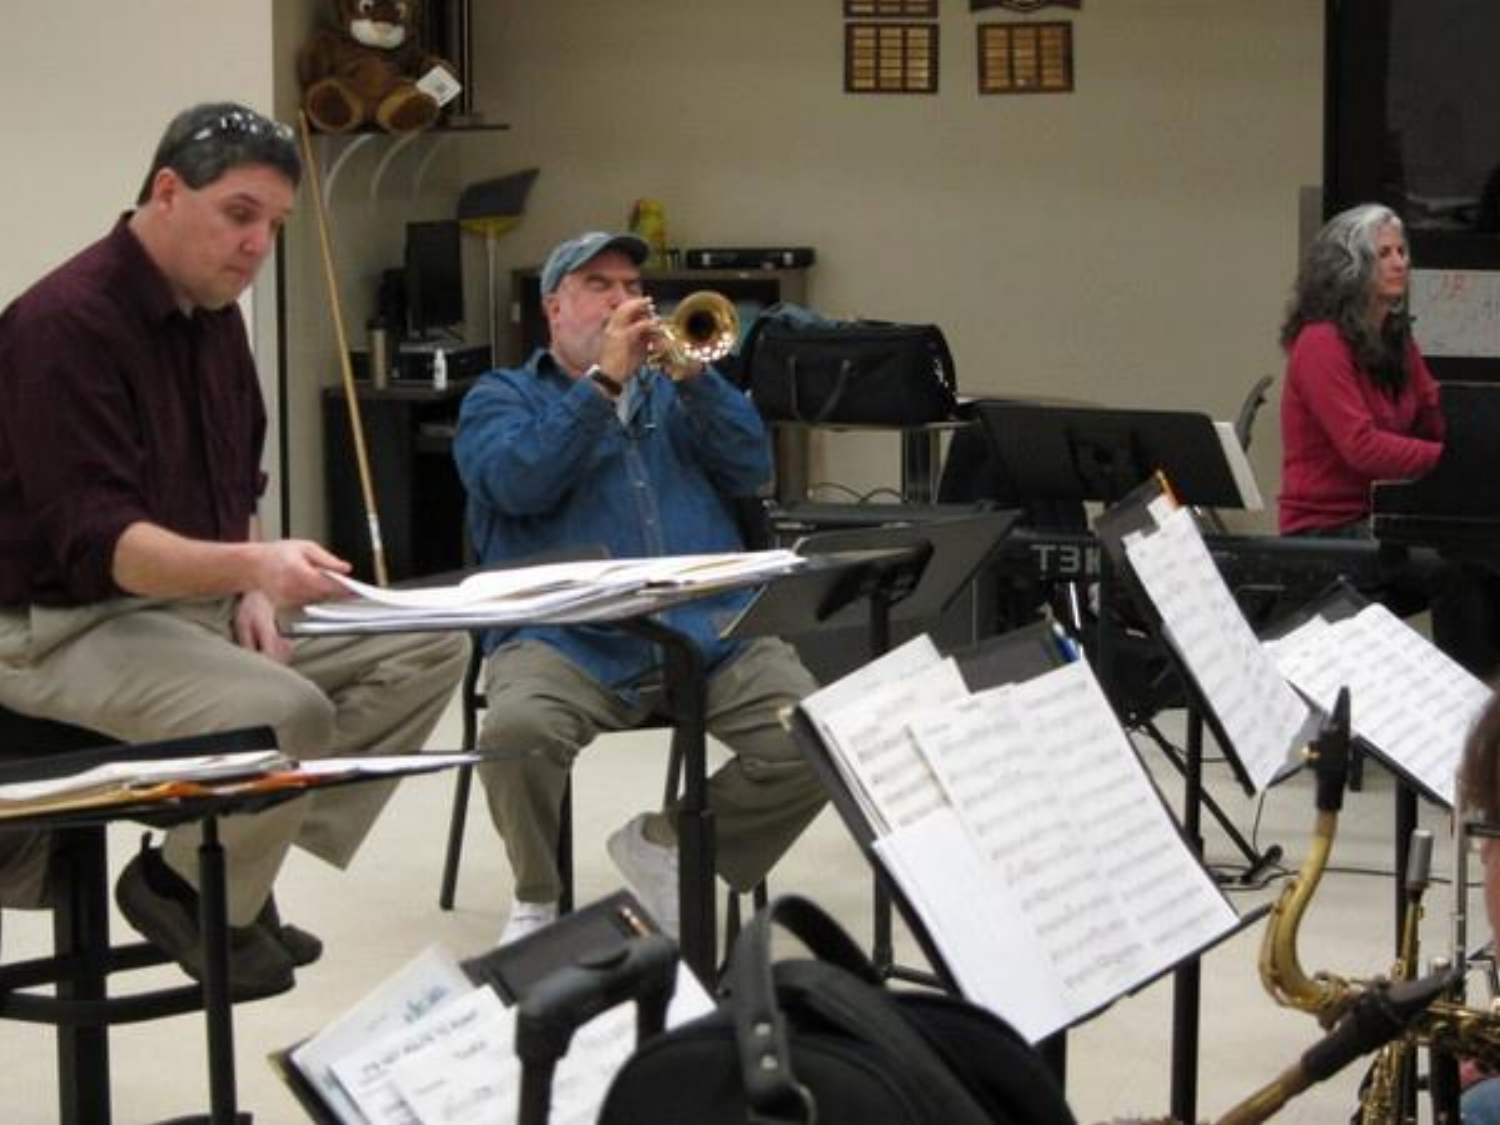 Pianist Mary Louise Knutson rehearsing with trumpeter Randy Brecker (center), JazzMN Orchestra director Doug Snapp (left), and JazzMN Orchestra (not pictured), Minneapolis, MN.